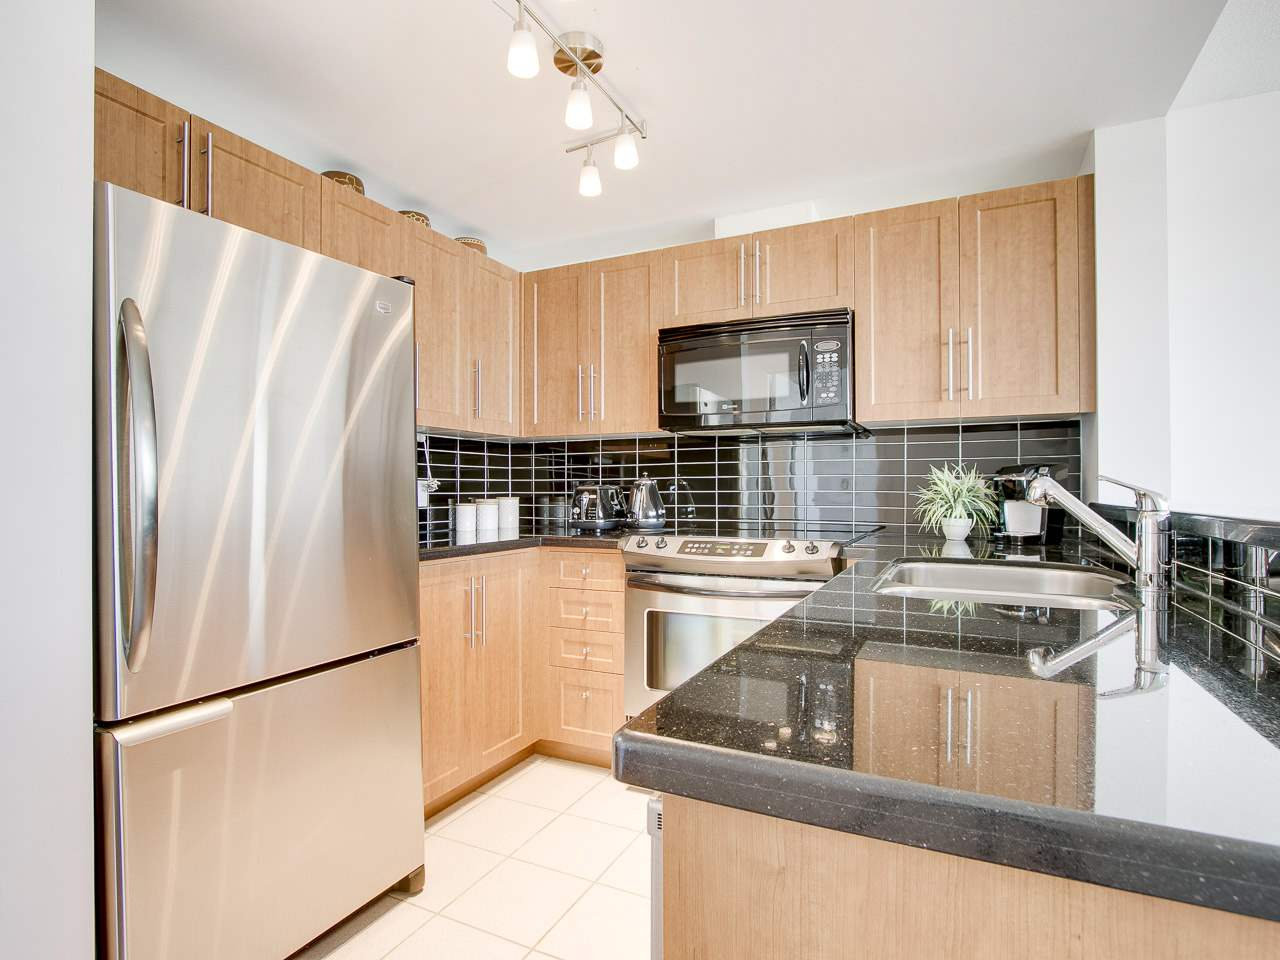 "Photo 12: 902 588 BROUGHTON Street in Vancouver: Coal Harbour Condo for sale in ""HARBOURSIDE PARK"" (Vancouver West)  : MLS® # R2106810"